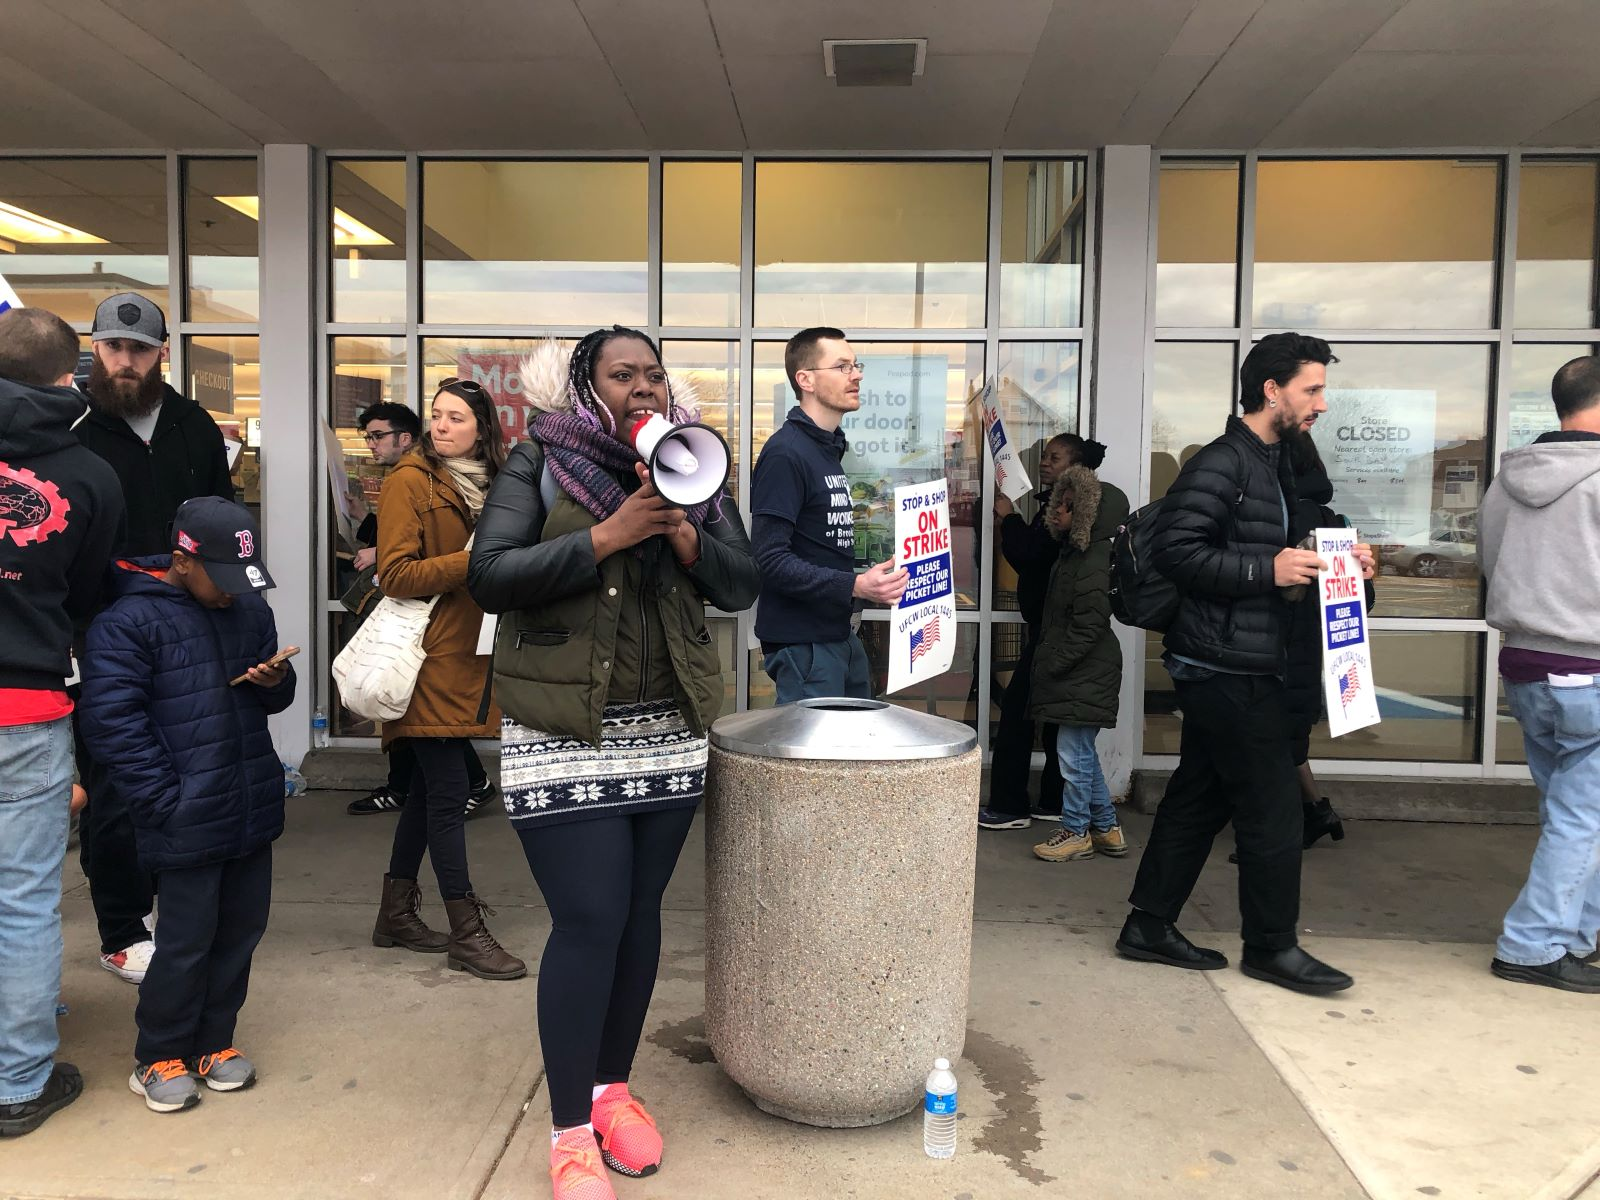 Stop & Shop strike day one: 31,000 workers walk off the job